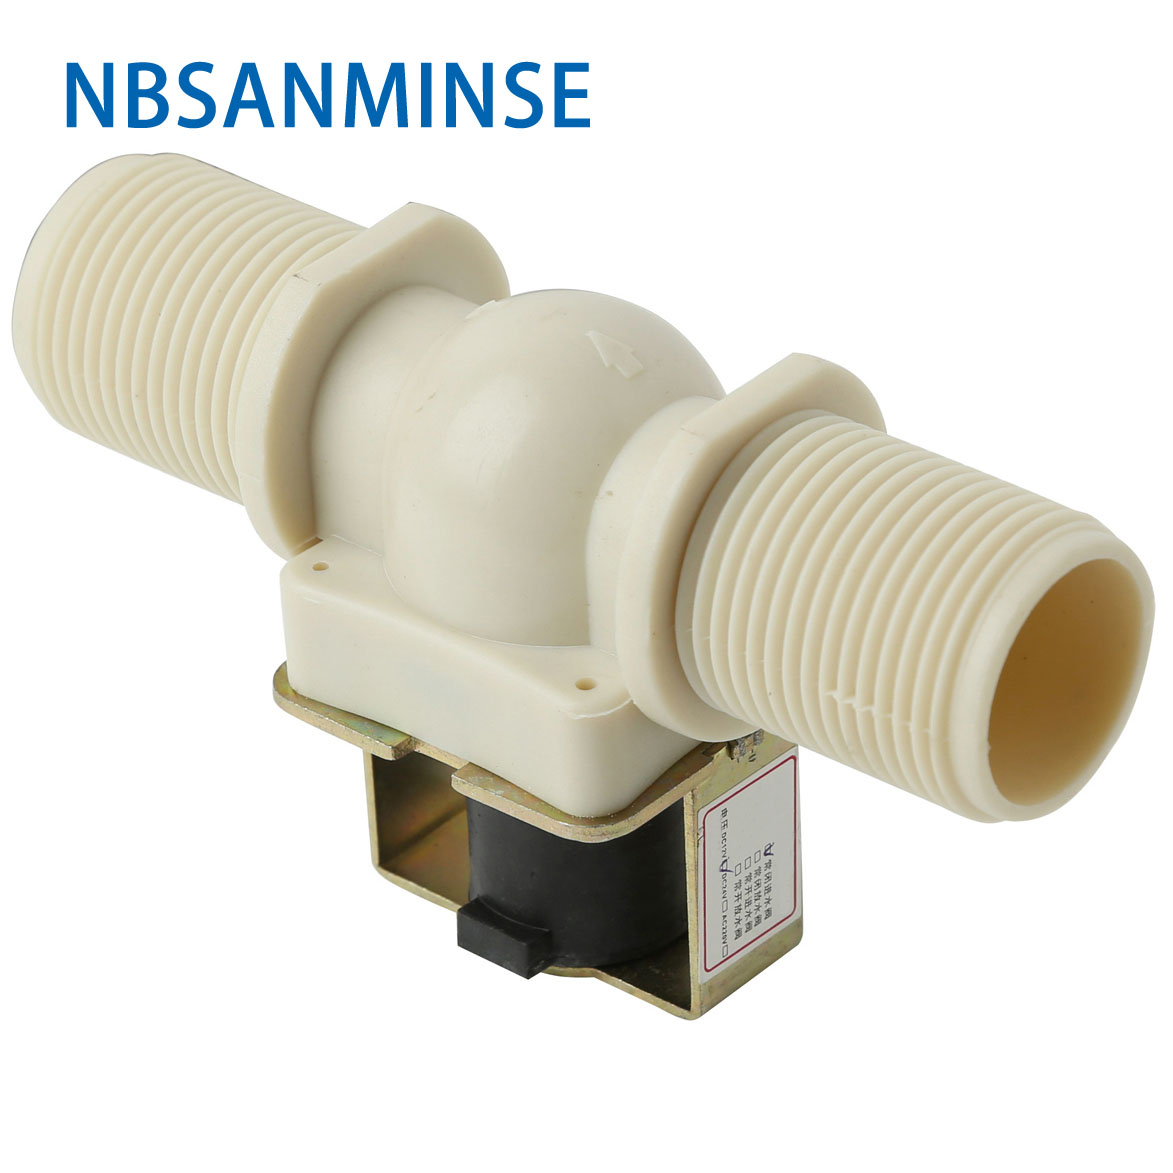 Nbsanminse Smpdj 07 Water Solenoid Valve G1 Inch 5w 420ma Used For Washing Machines Dishwashers